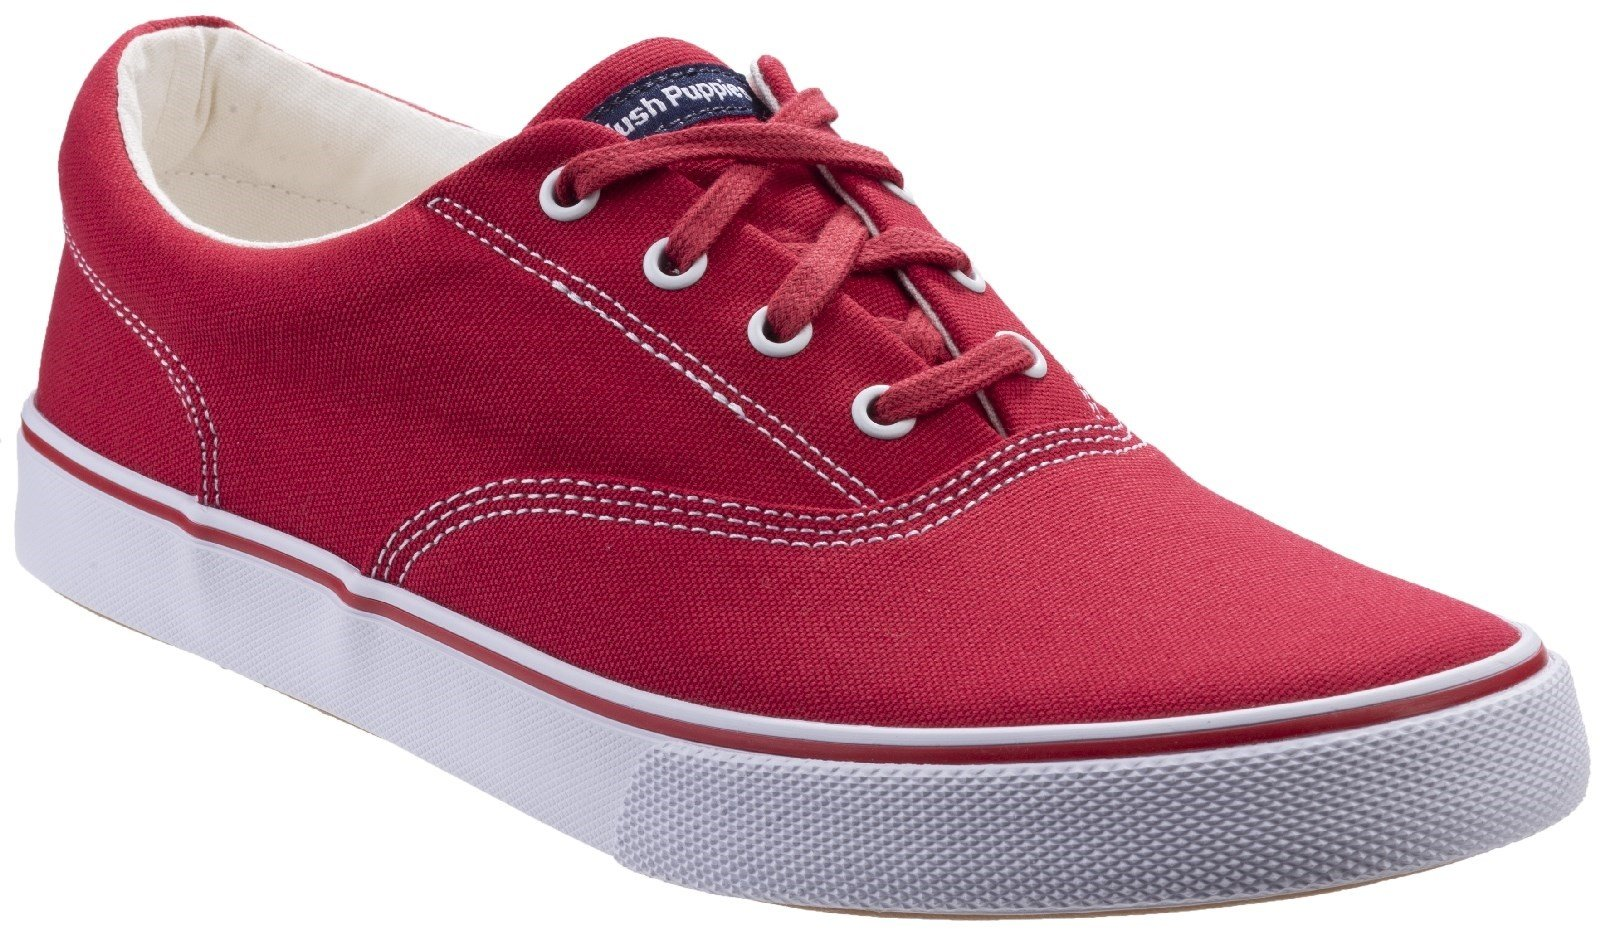 Hush Puppies Women's Byanca Lace Up Trainer Red 297171 - Red 3